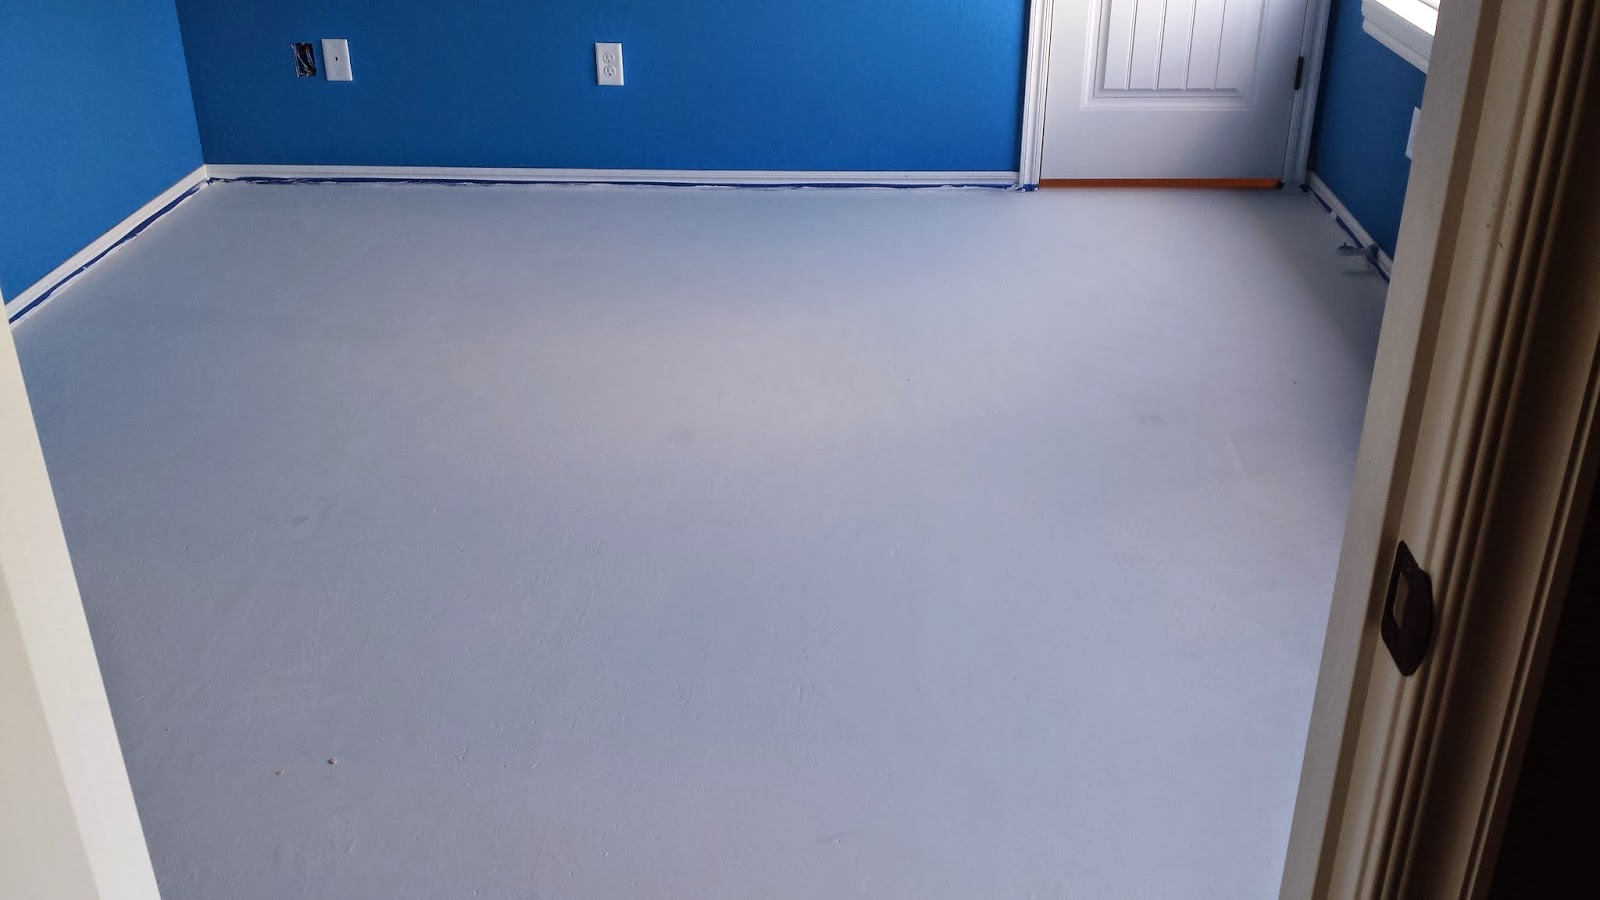 Painted Plywood Subfloor - Beginning to End: Painted ...